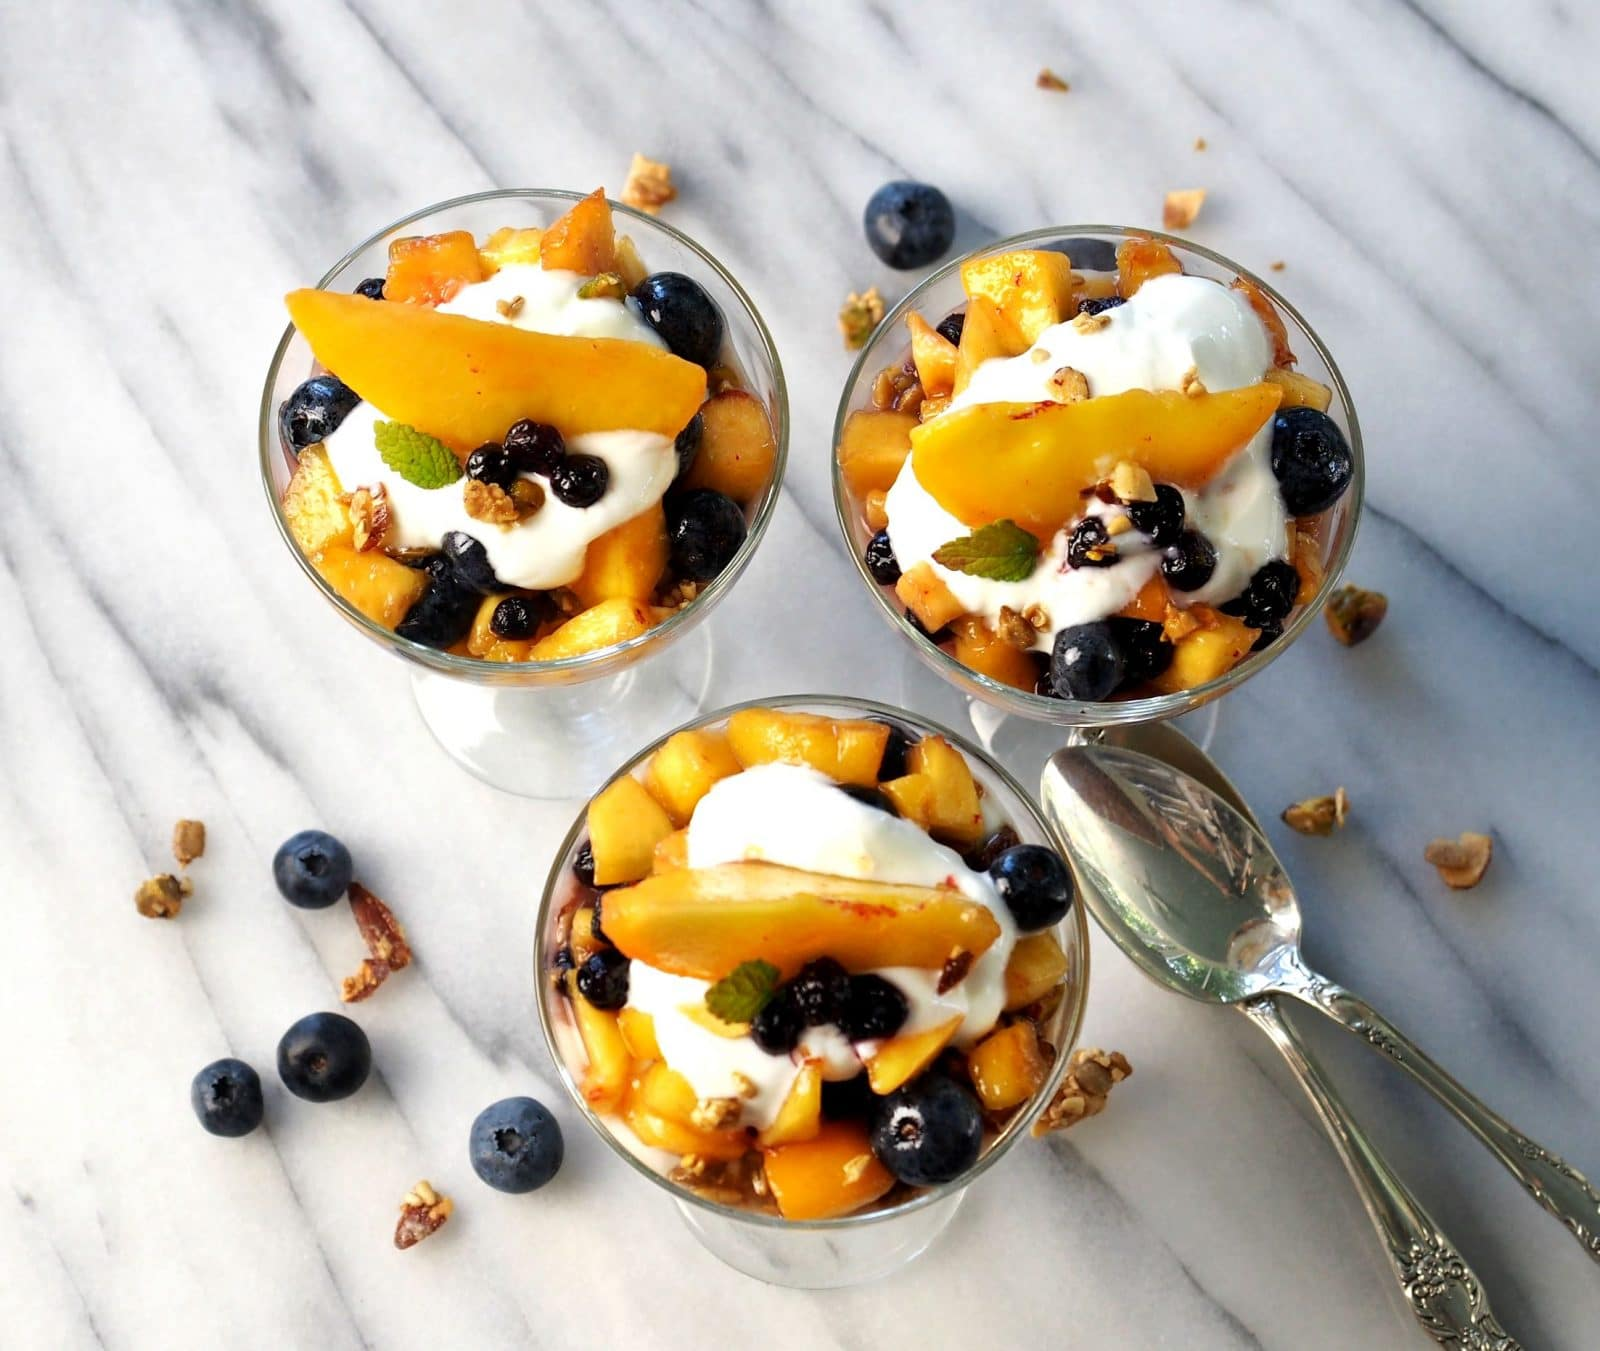 Blueberry Peach Yogurt Parfaits - the perfect healthy breakfast or dessert. Fresh fruit, Greek yogurt, Maple Granola - smooth, naturally sweet & crunchy. Simply Sated